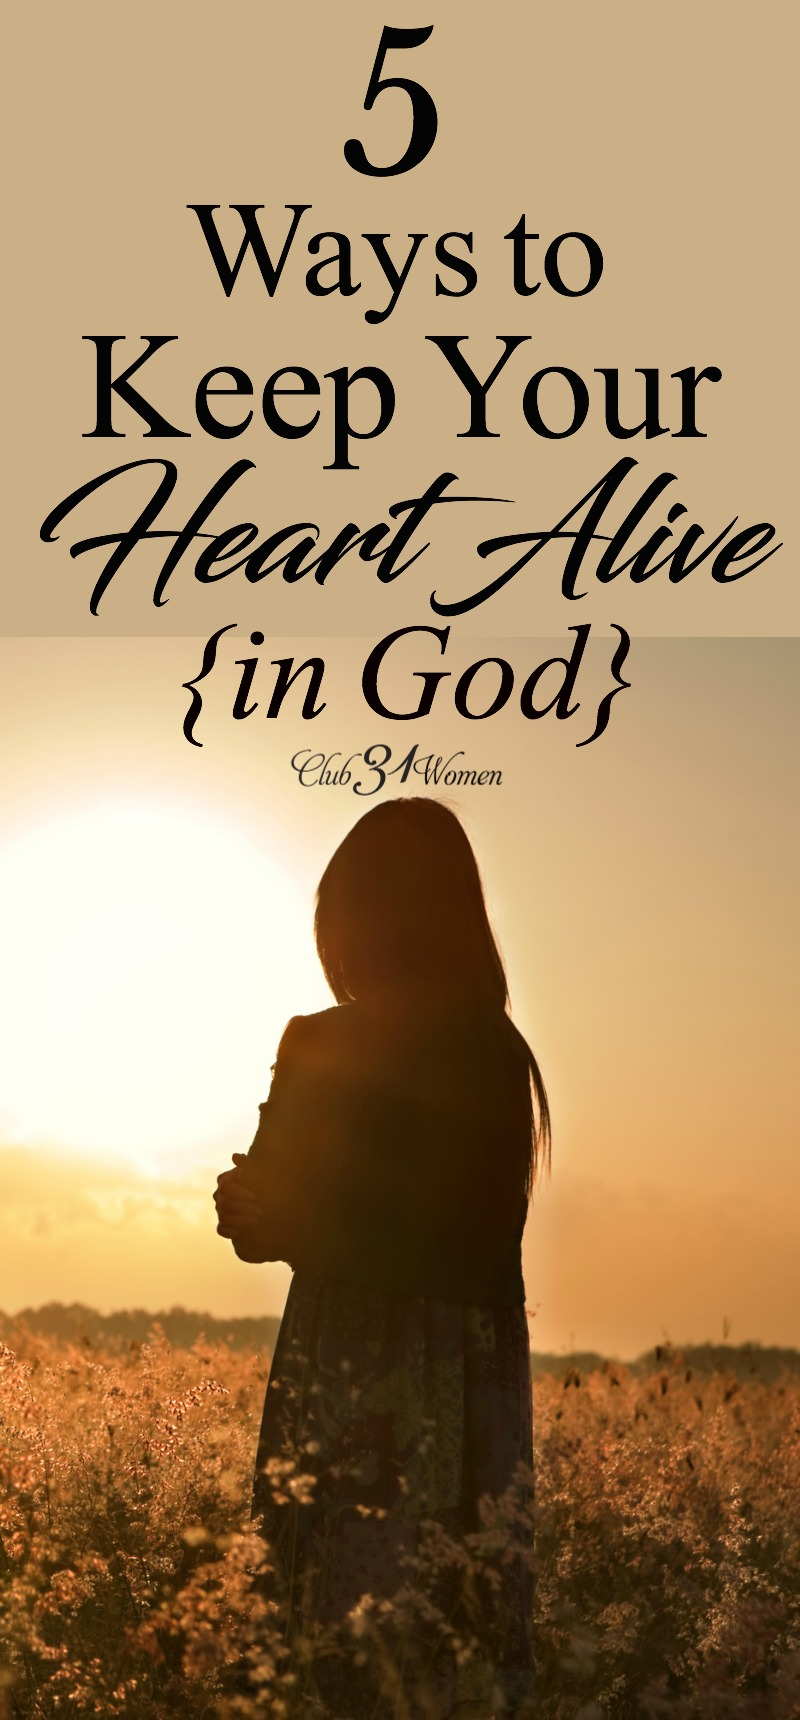 How can you get even closer to God and fall even more in love with Him? How can you keep your heart alive and beating with the heartbeat of Jesus? via @Club31Women